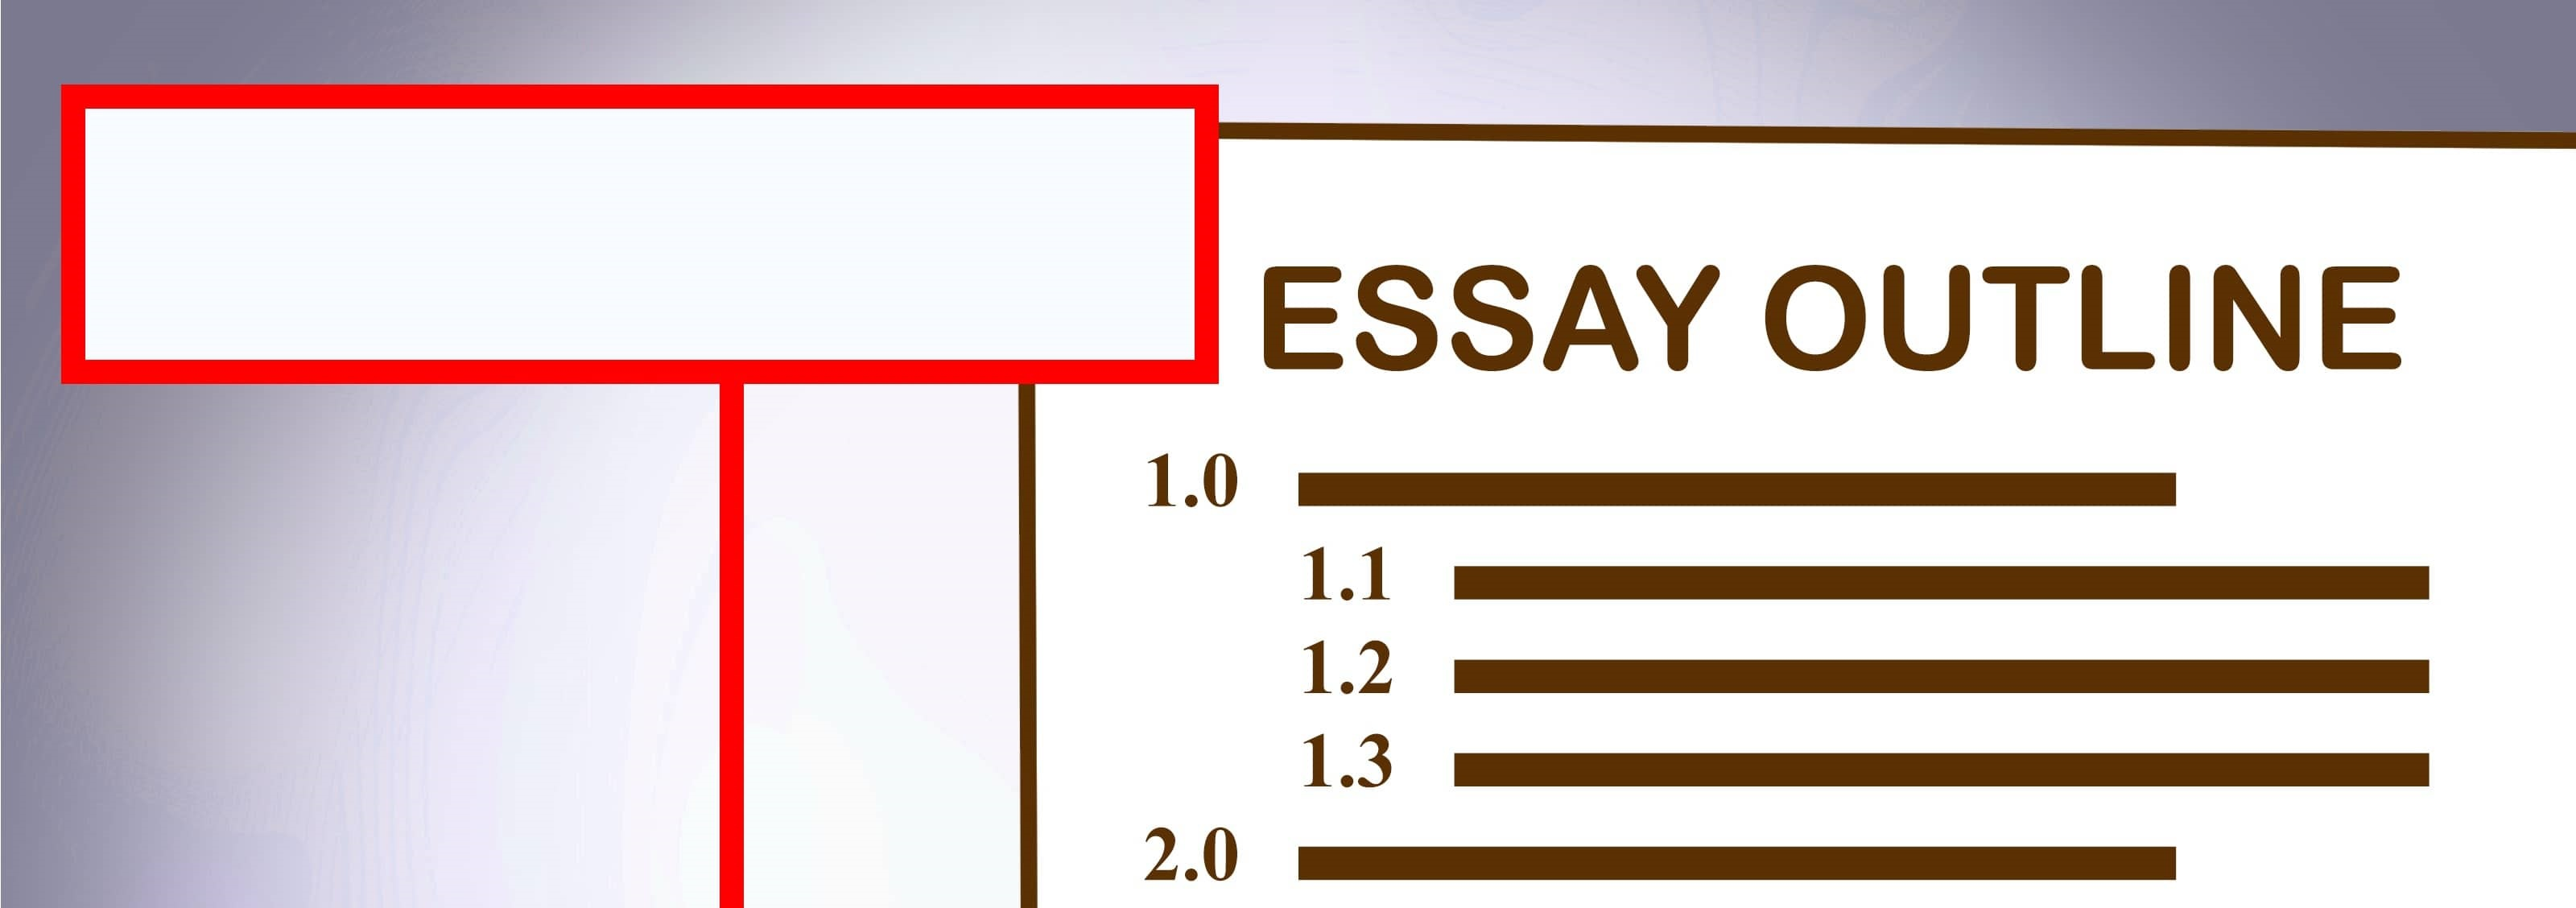 essay outline template to make your life easier argumentative essay outline